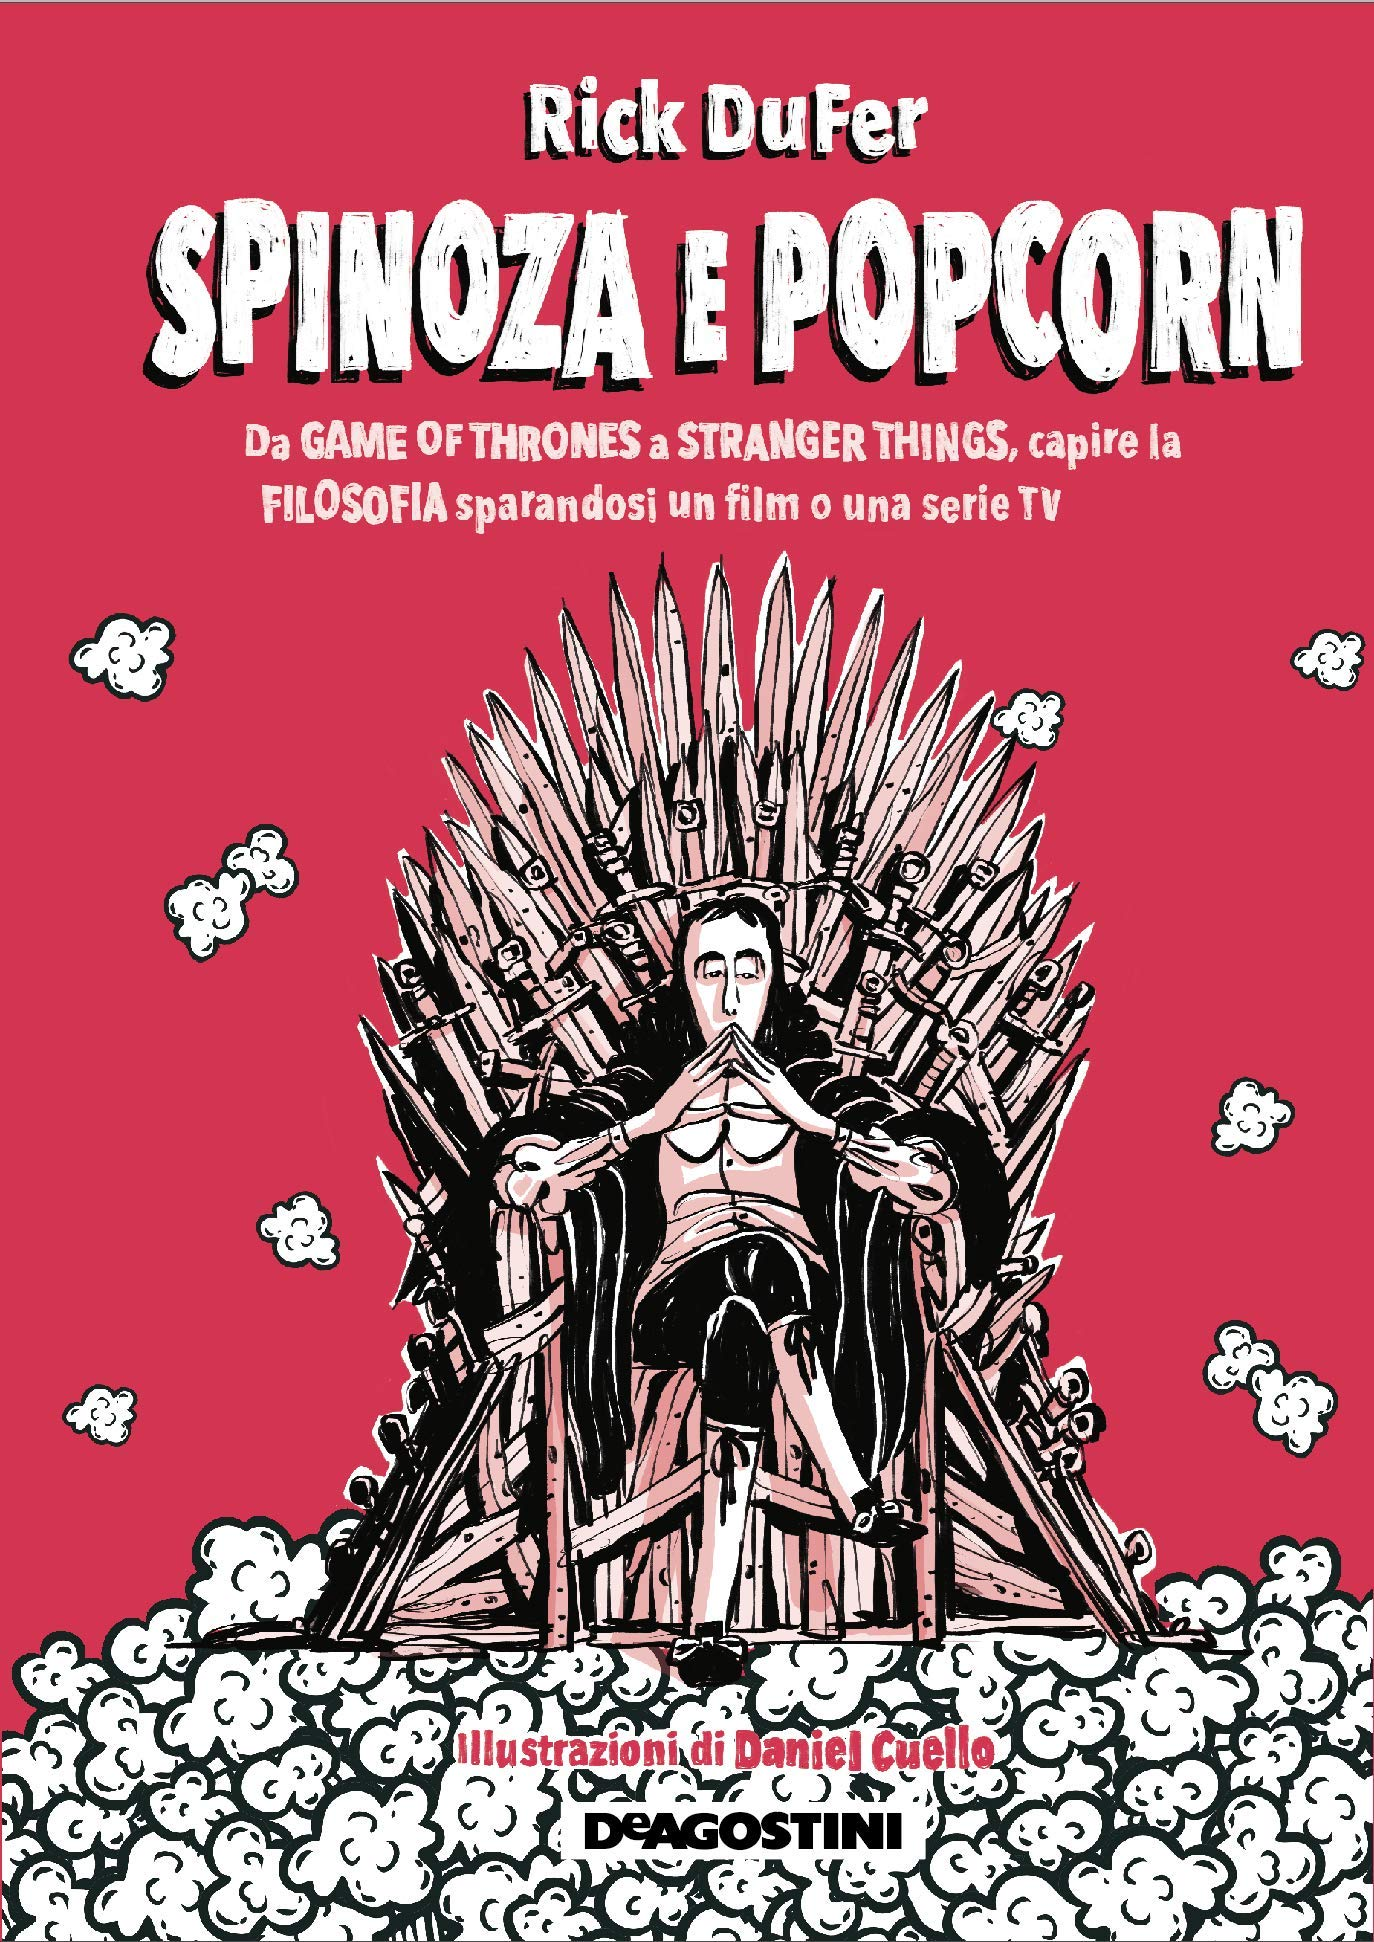 Download Spinoza E Popcorn. Da Game Of Thrones A Stranger Things, Capire La Filosofia Sparandosi Un Film O Una Serie TV 